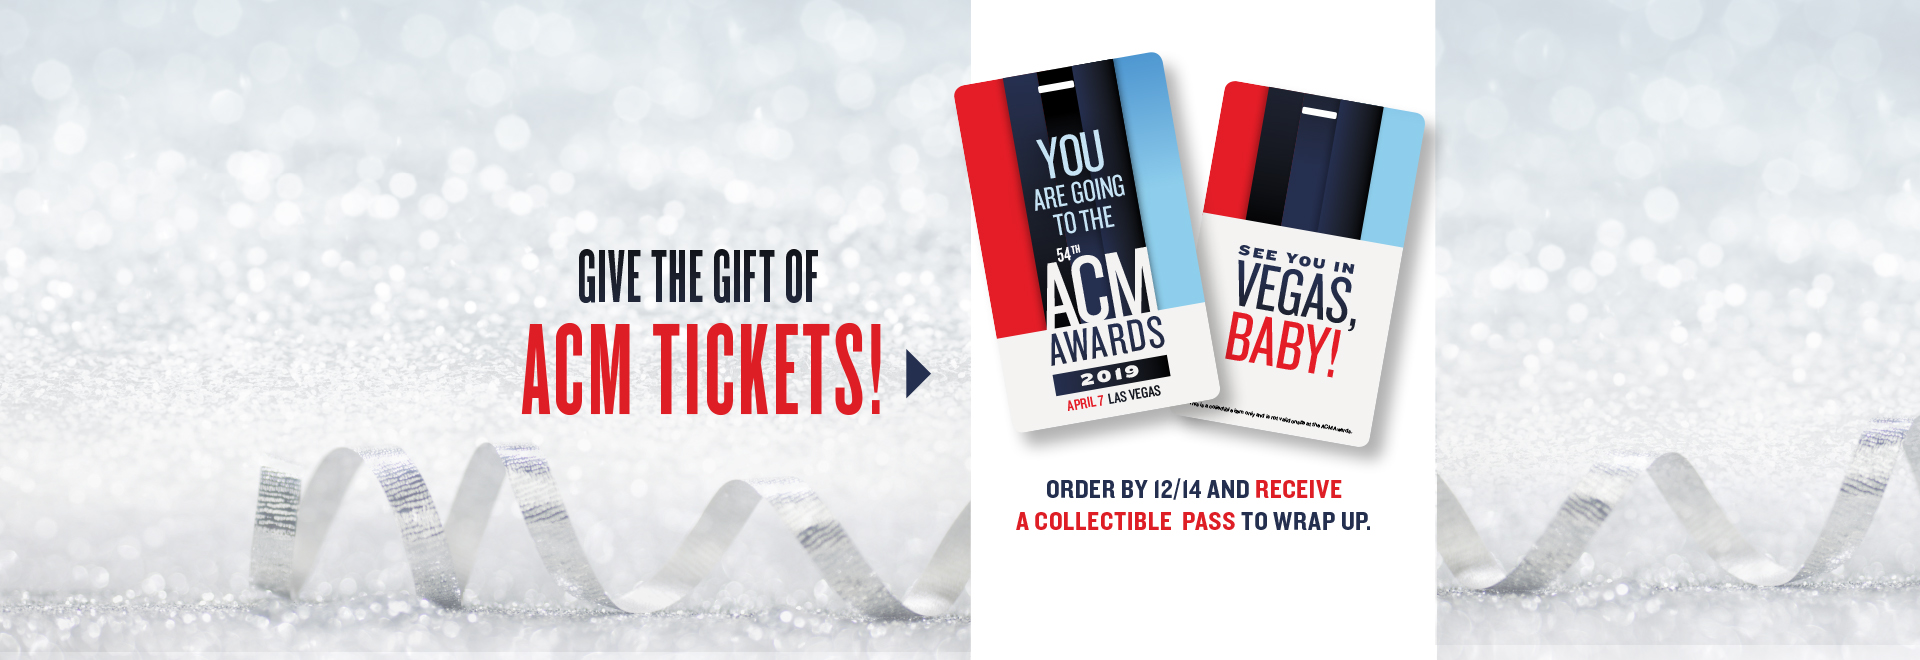 acma2019_Holiday_Tickets_ROTATOR_LL_1920x660_2.jpg